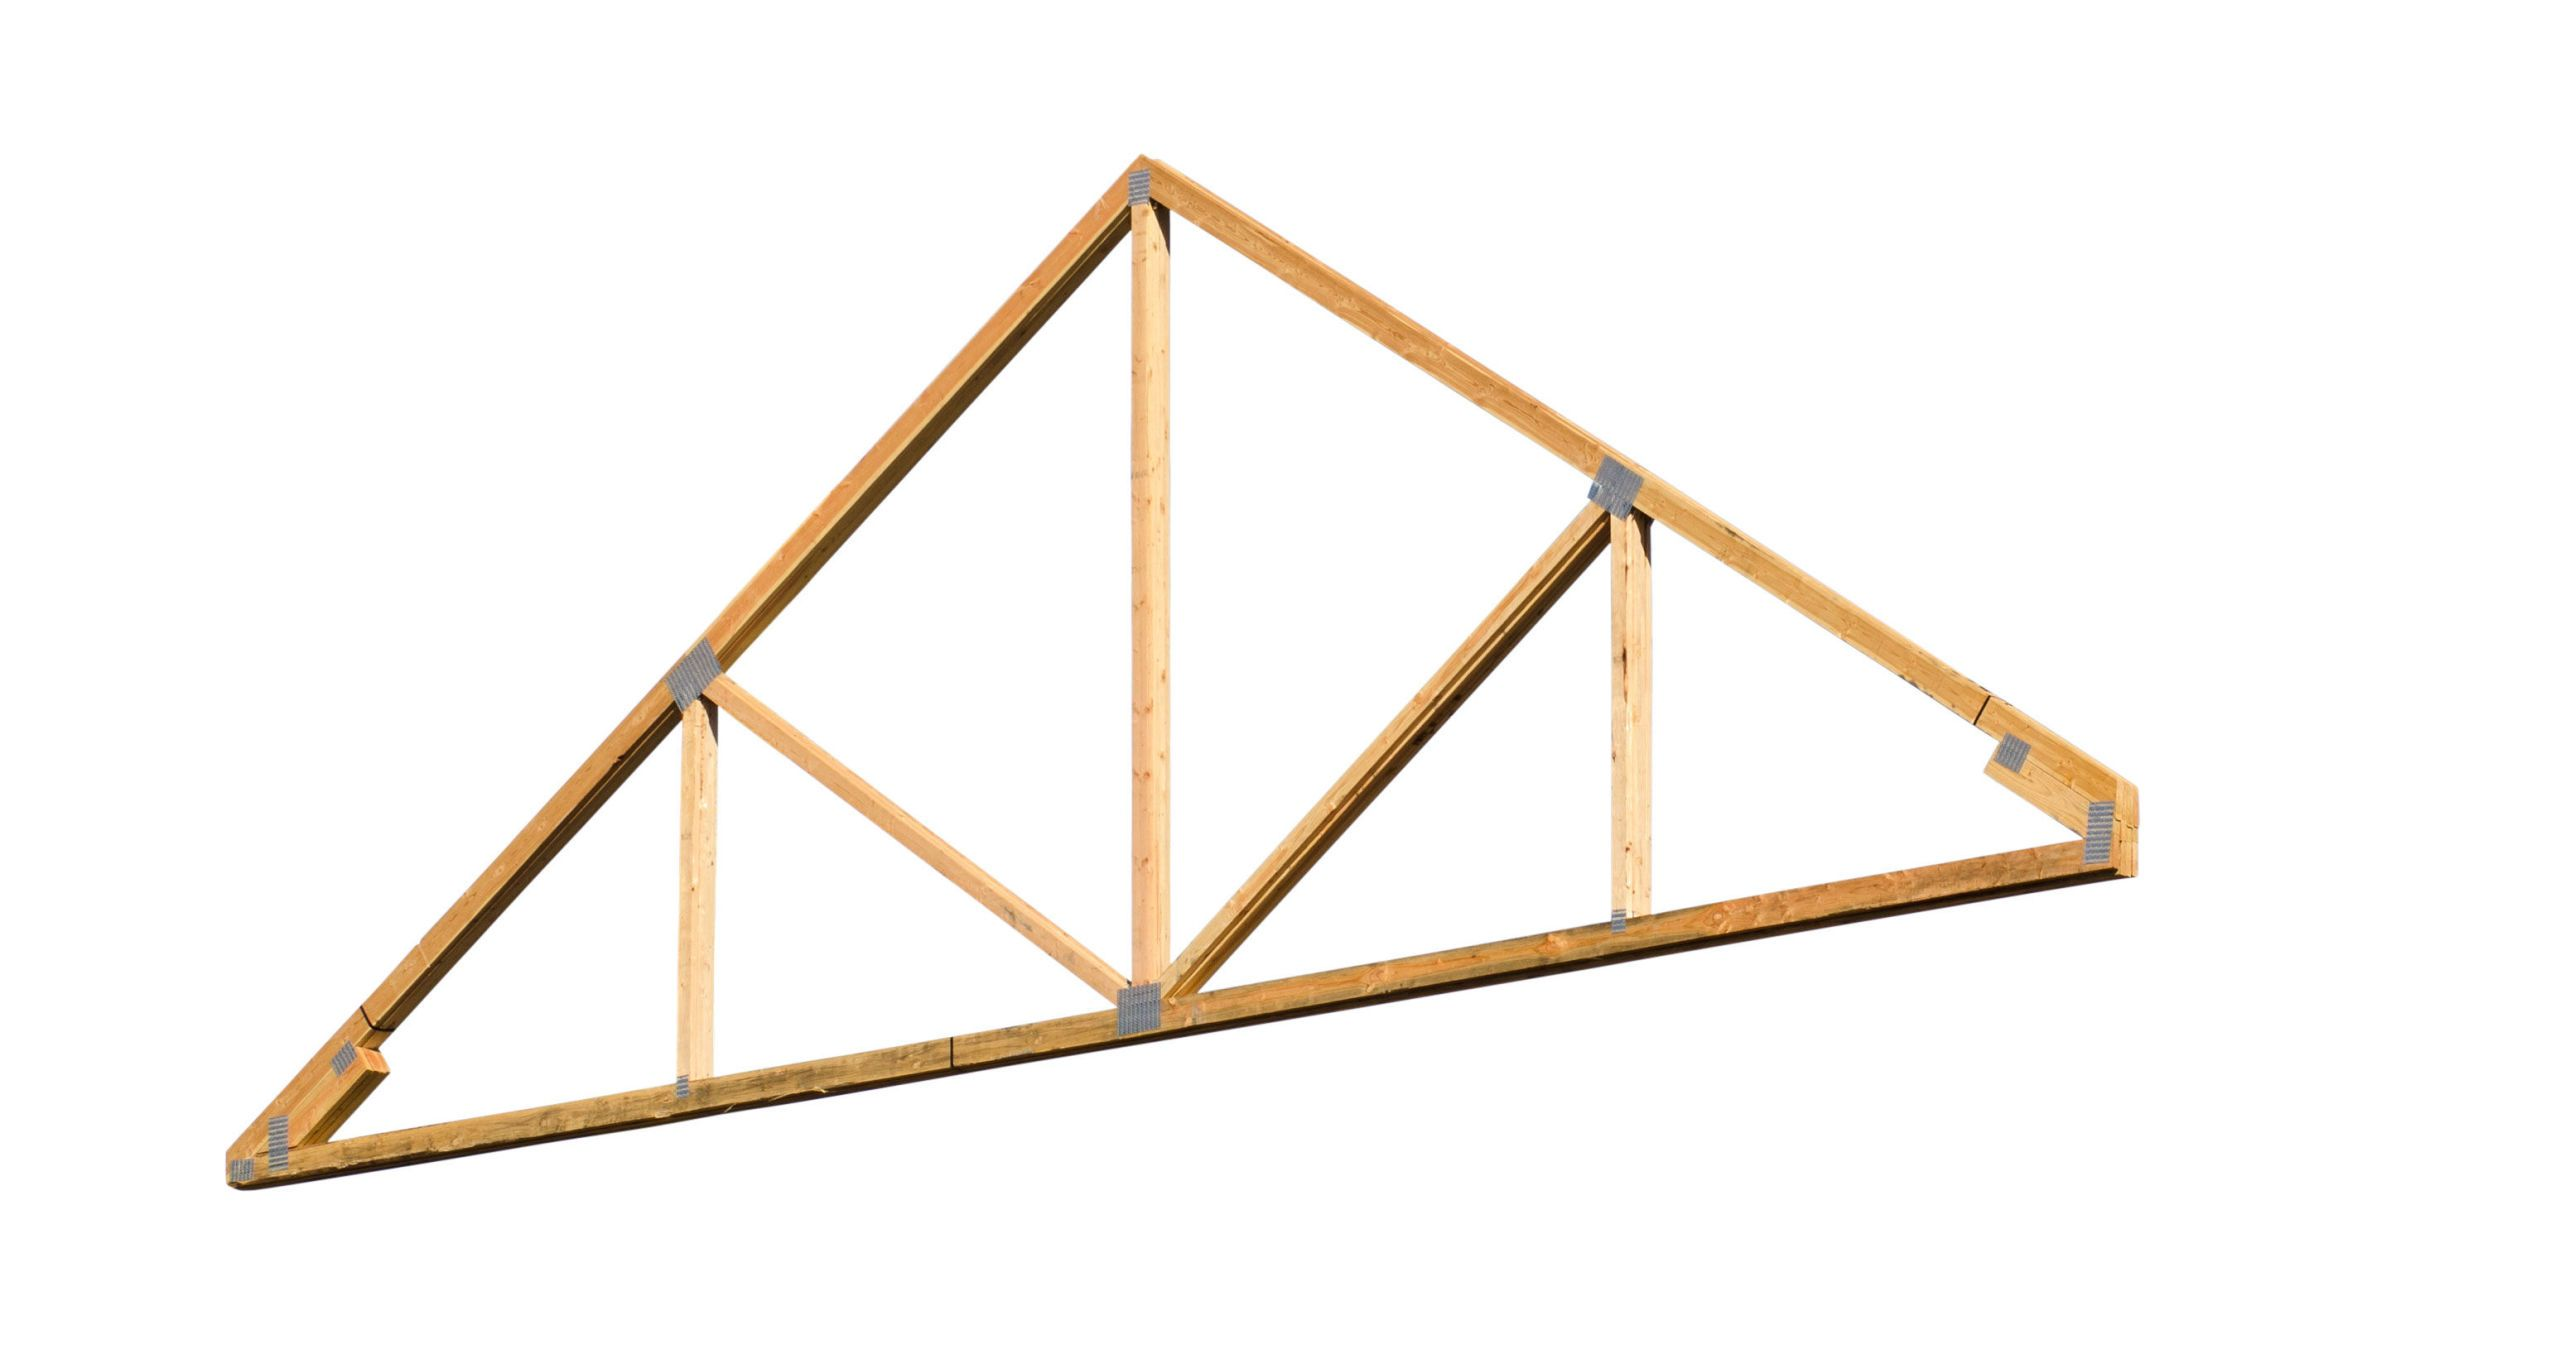 The Inspection Report On Our New House Says We Have Wood Truss Roof  Construction. Whatu0027s That?